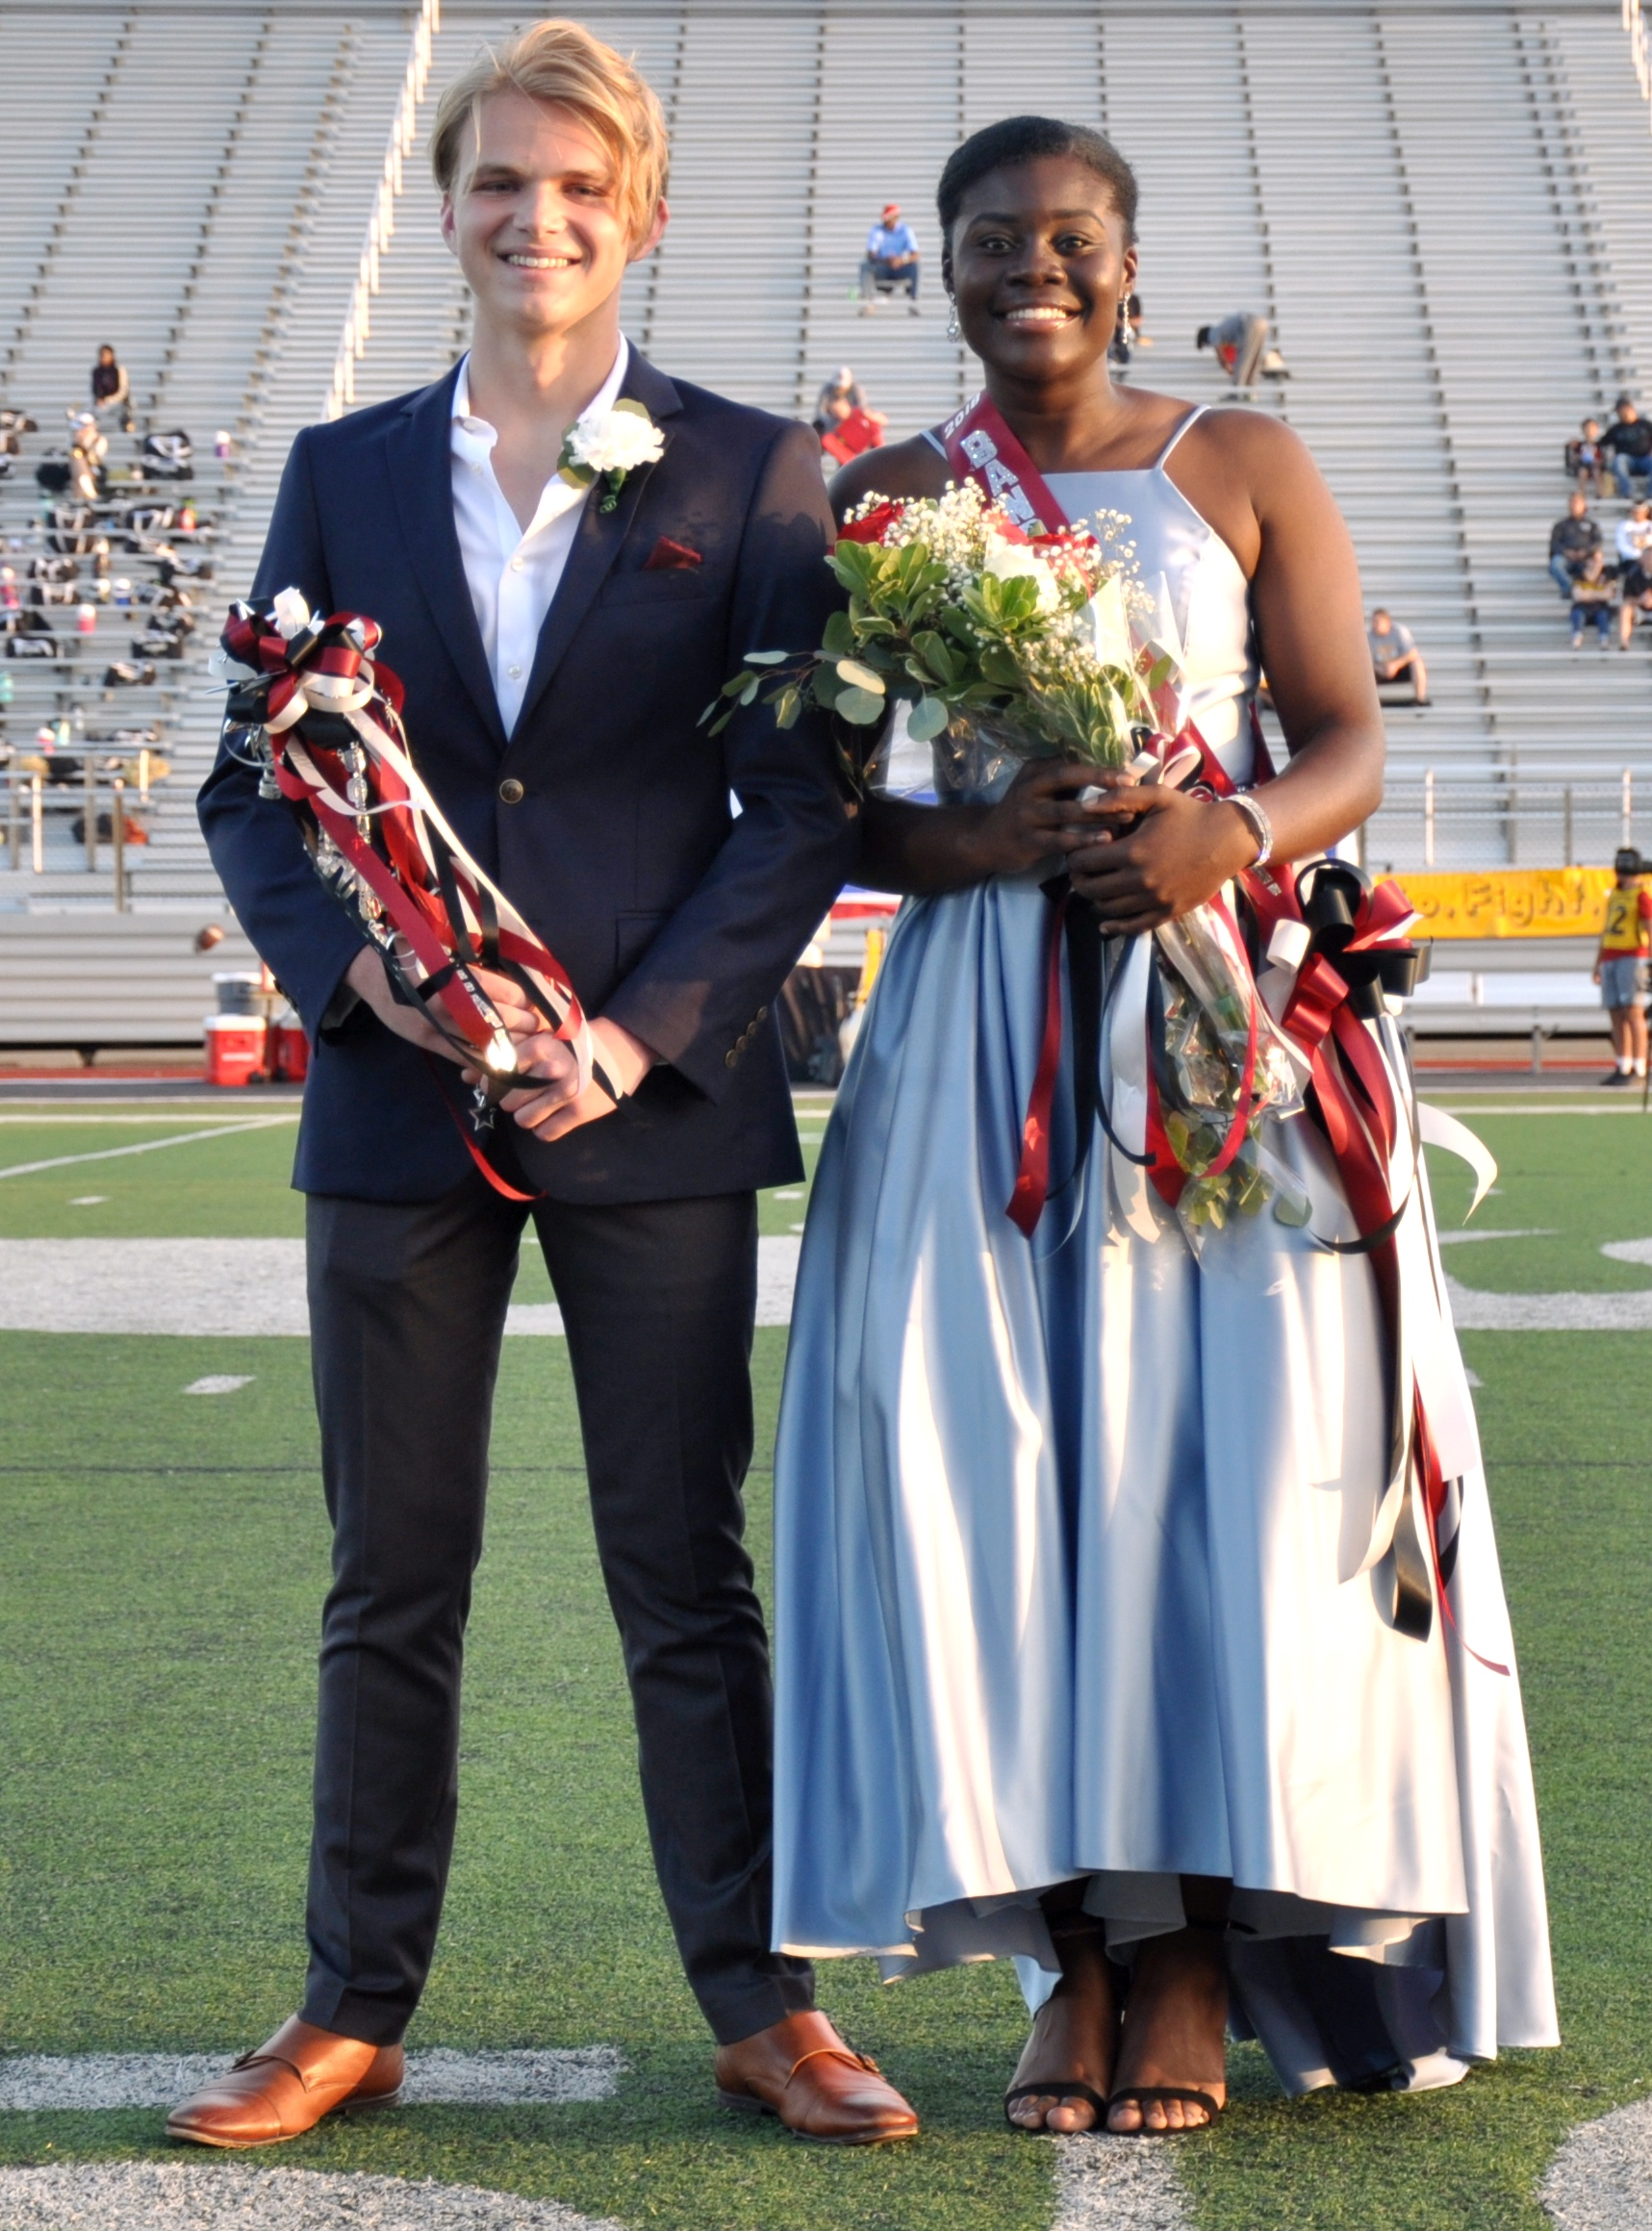 Rook Segrest and Laeticia Evang are named band beau and princess.